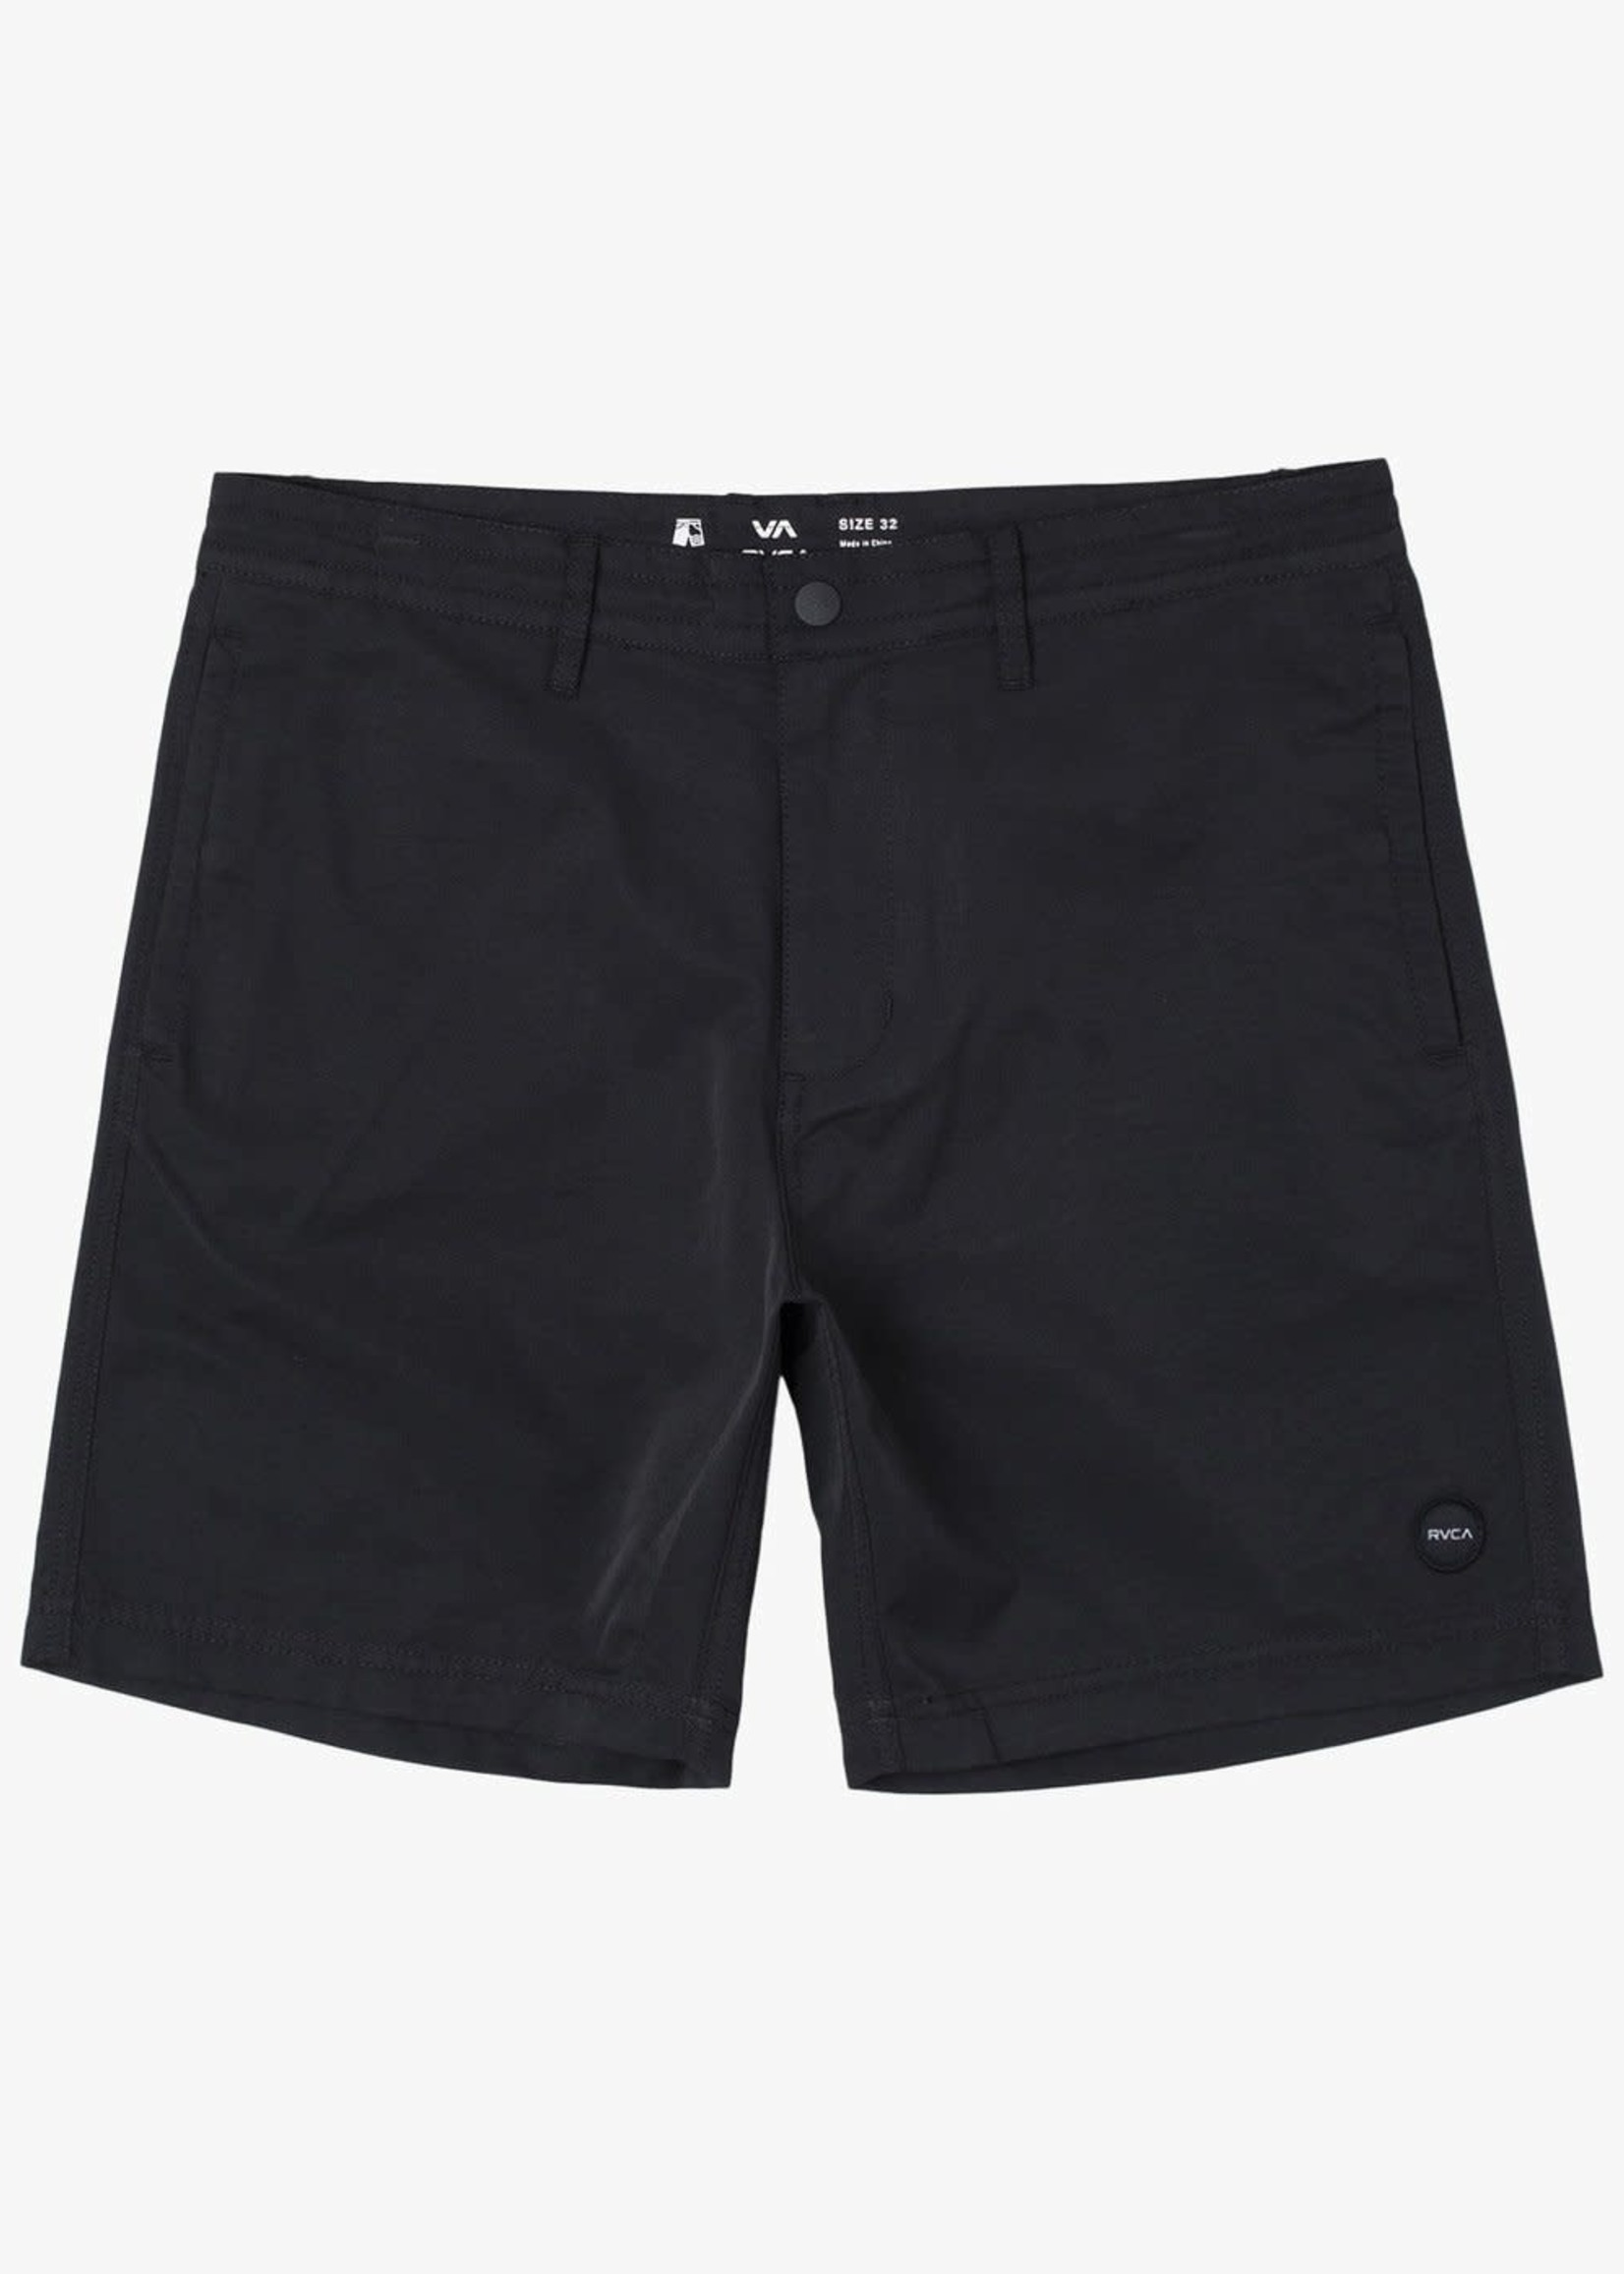 "RVCA CLIFFS Hybrid Shorts 18"", ALSO IN OLIVE"